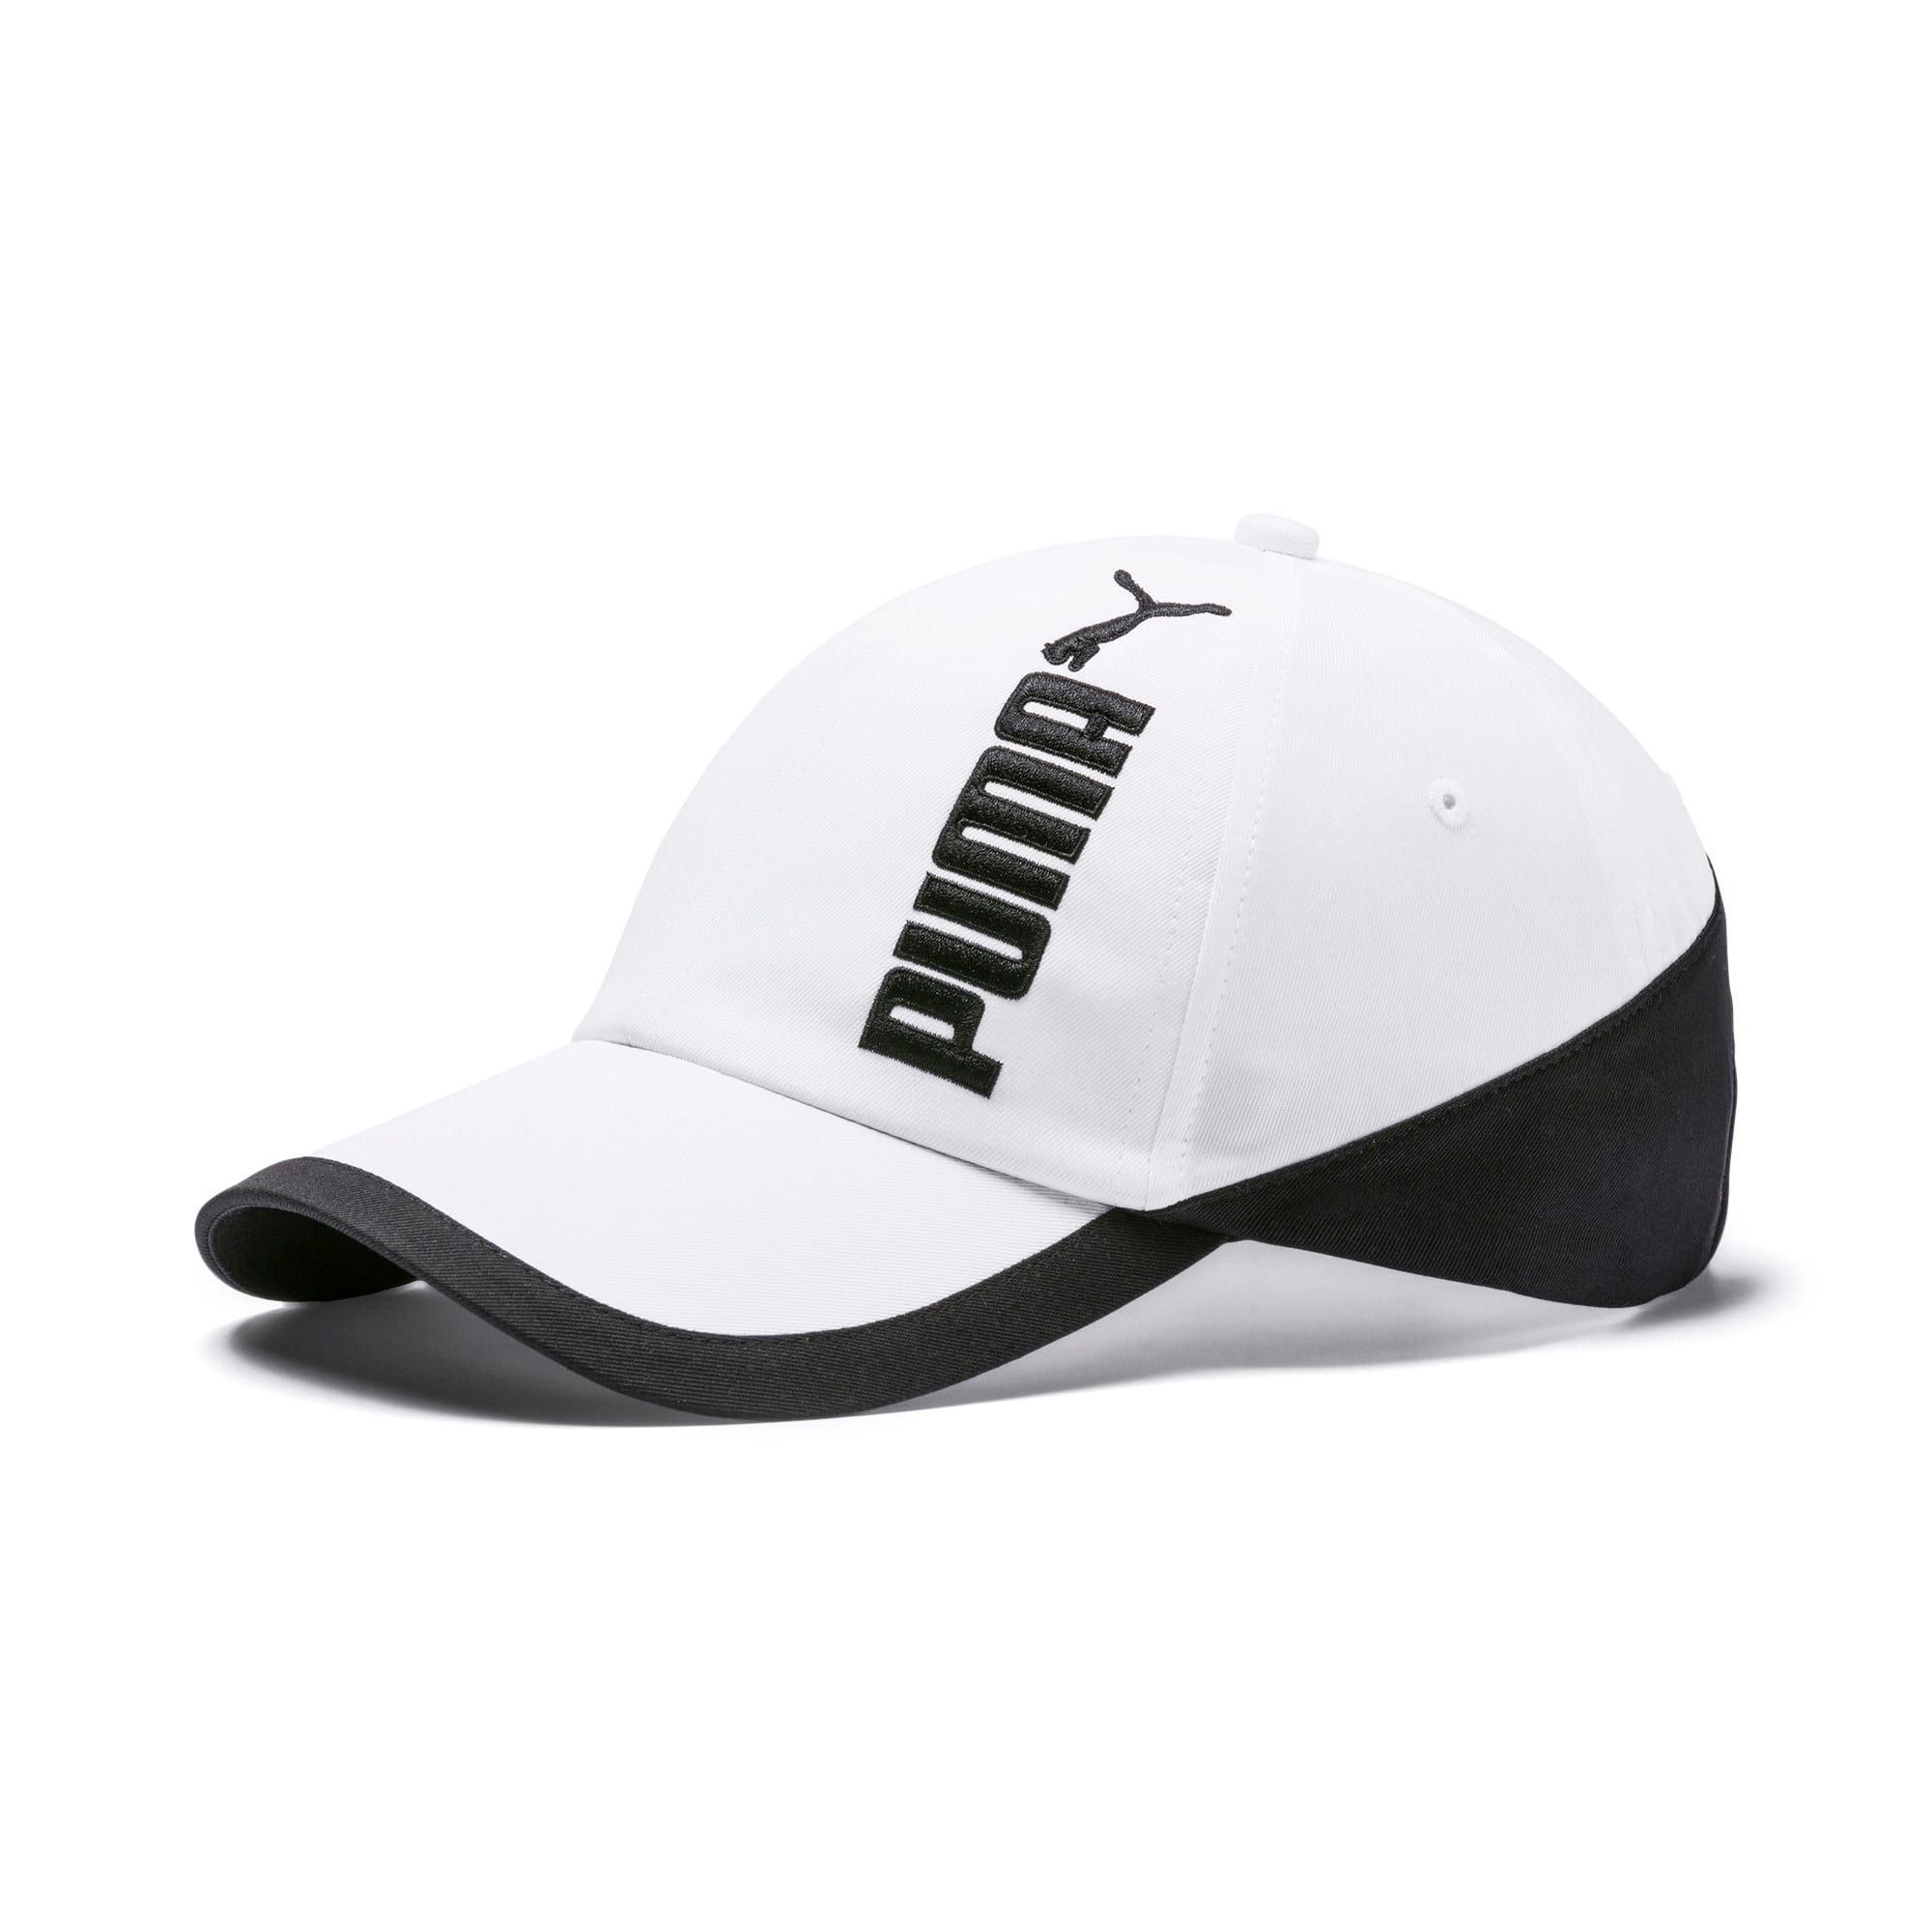 Thumbnail 1 of Premium Archive BB cap, Puma White-Puma Black, medium